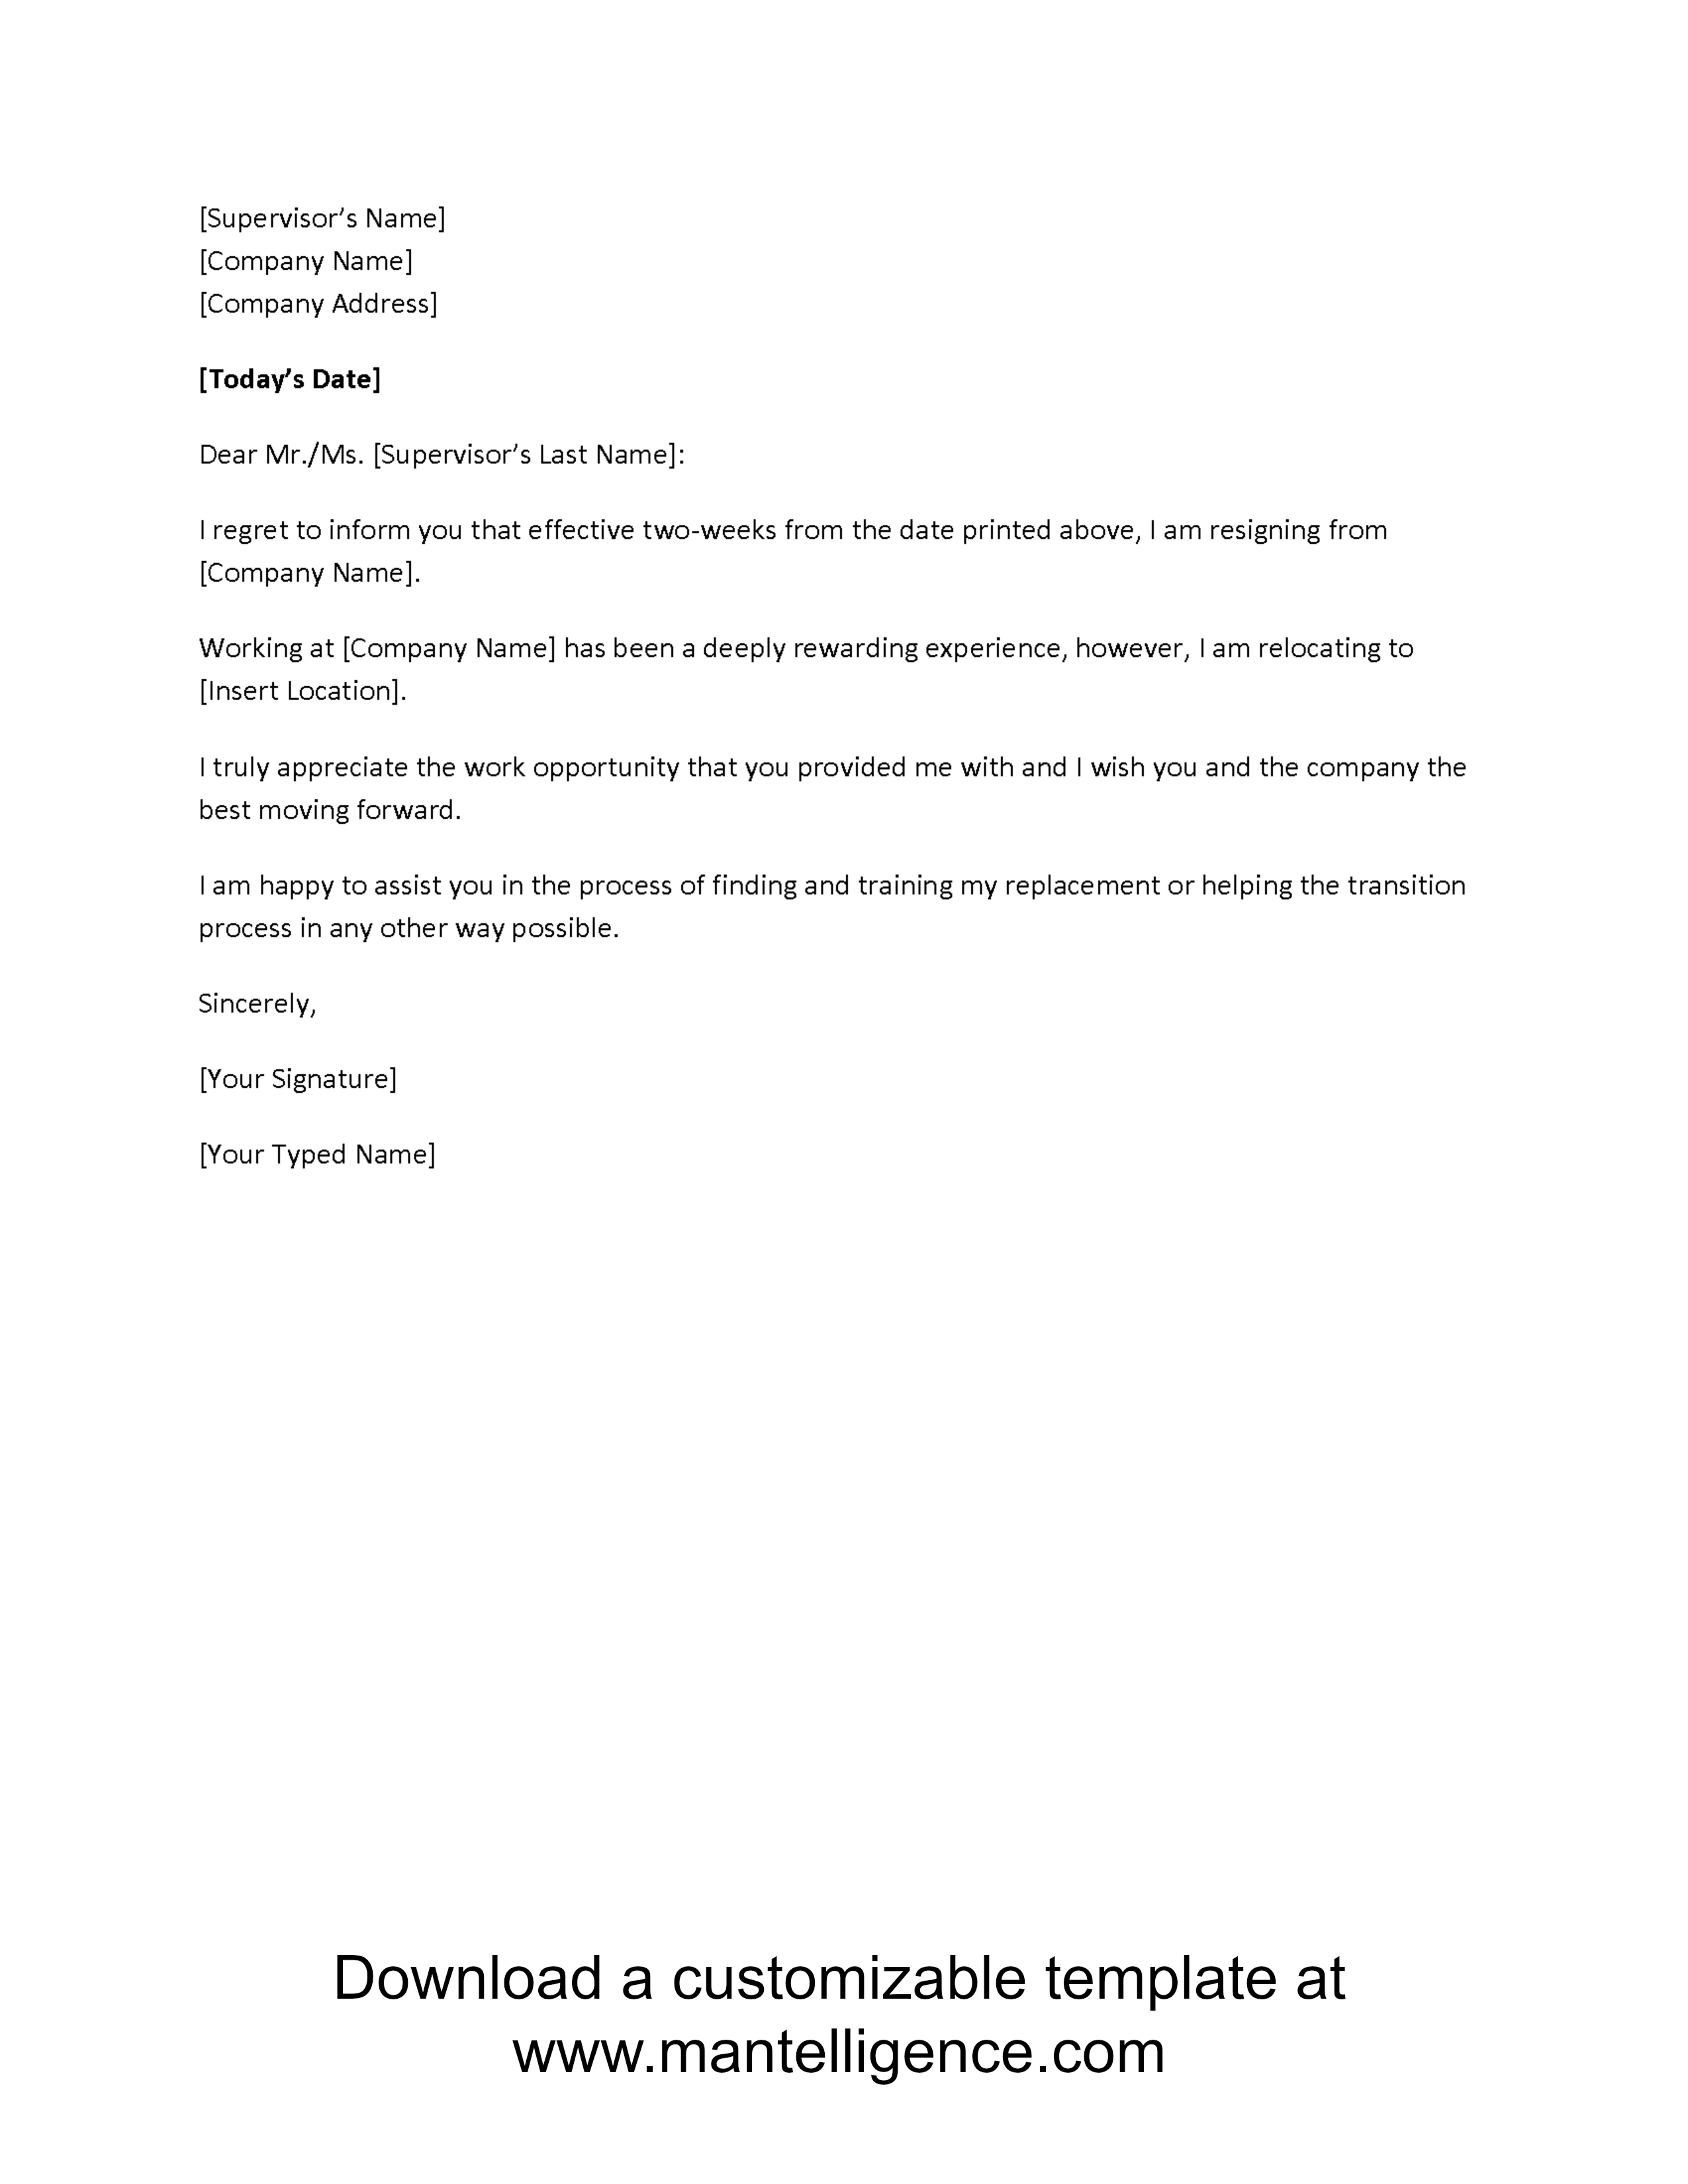 Direct Mail Letter Template - 3 Highly Professional Two Weeks Notice Letter Templates